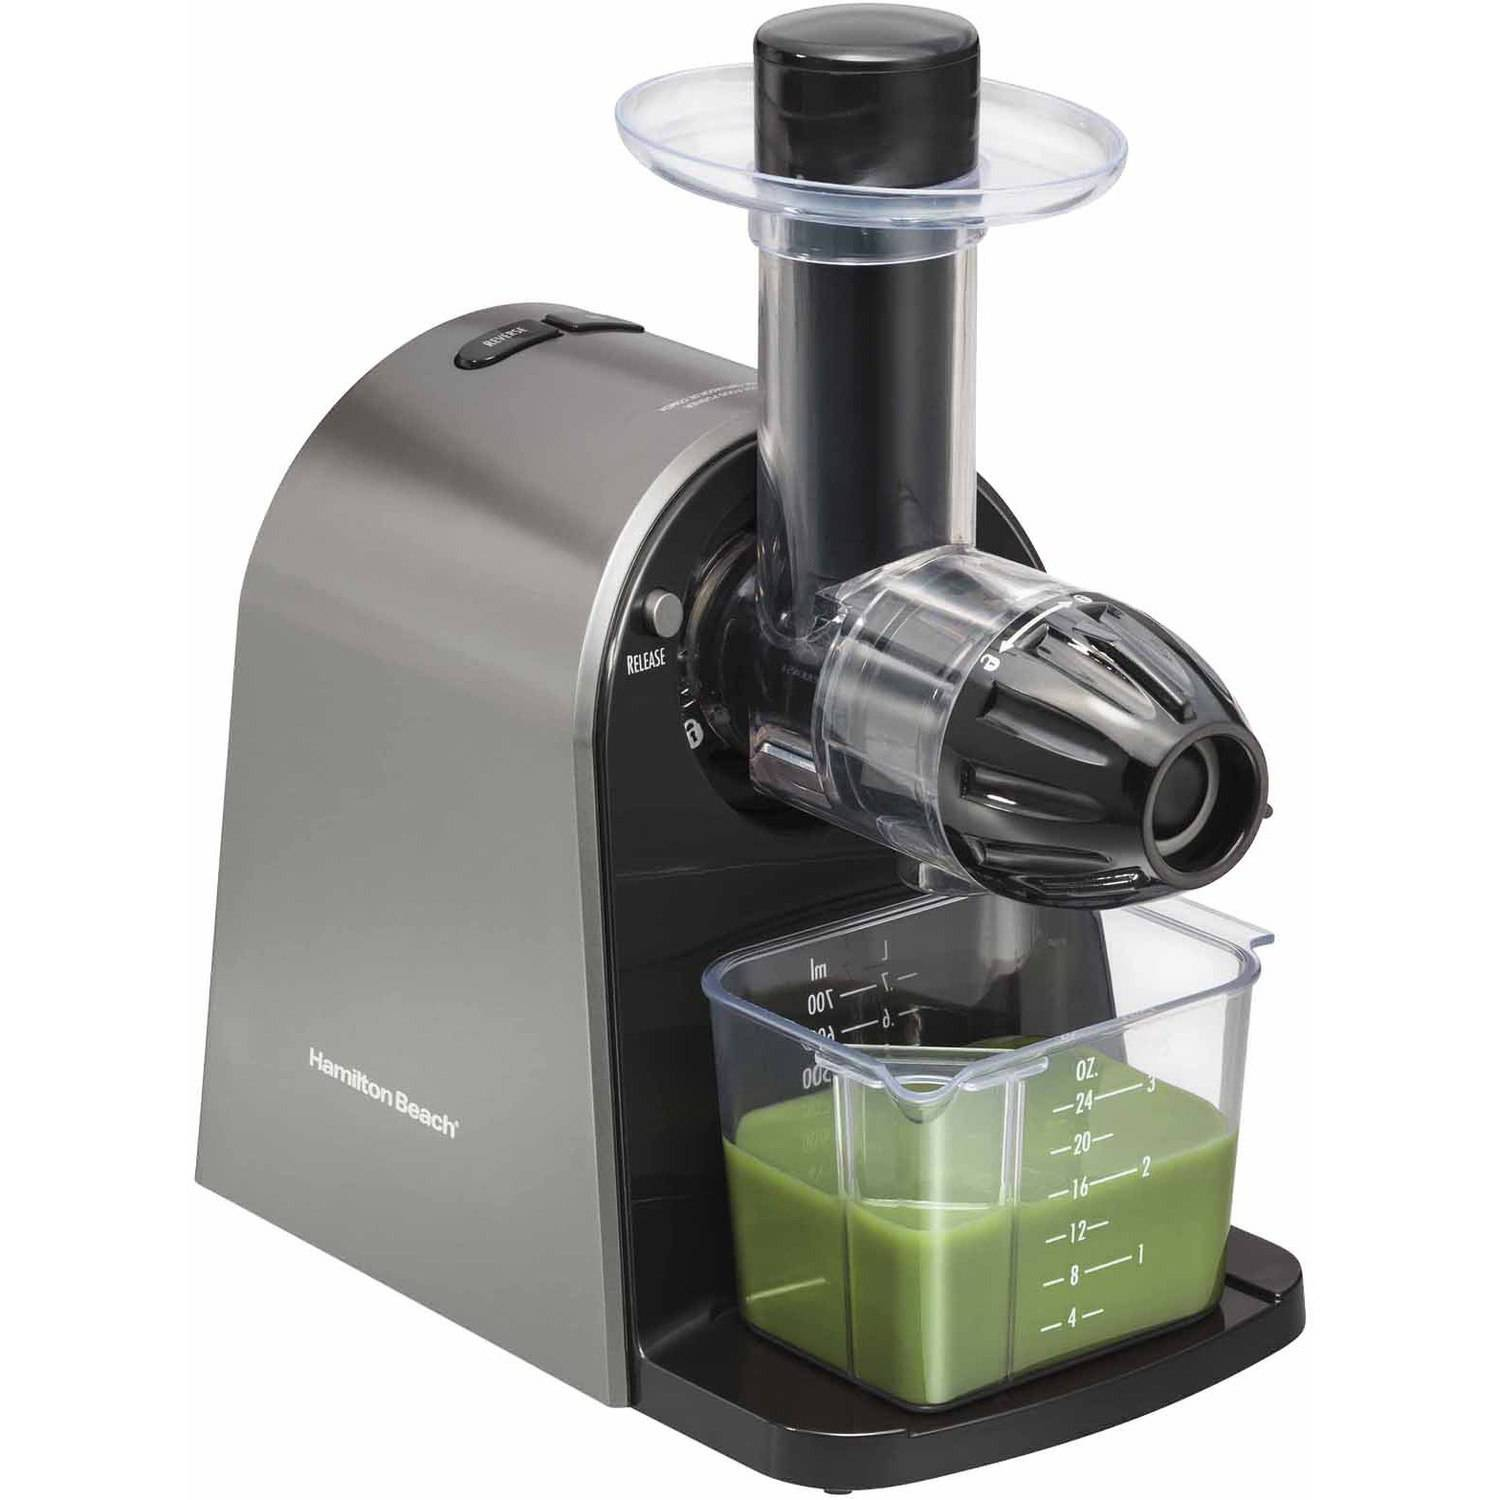 Juice Recipes For Slow Juicer : Cold Press Juicer Machine - Masticating Juicer Slow Juice ...